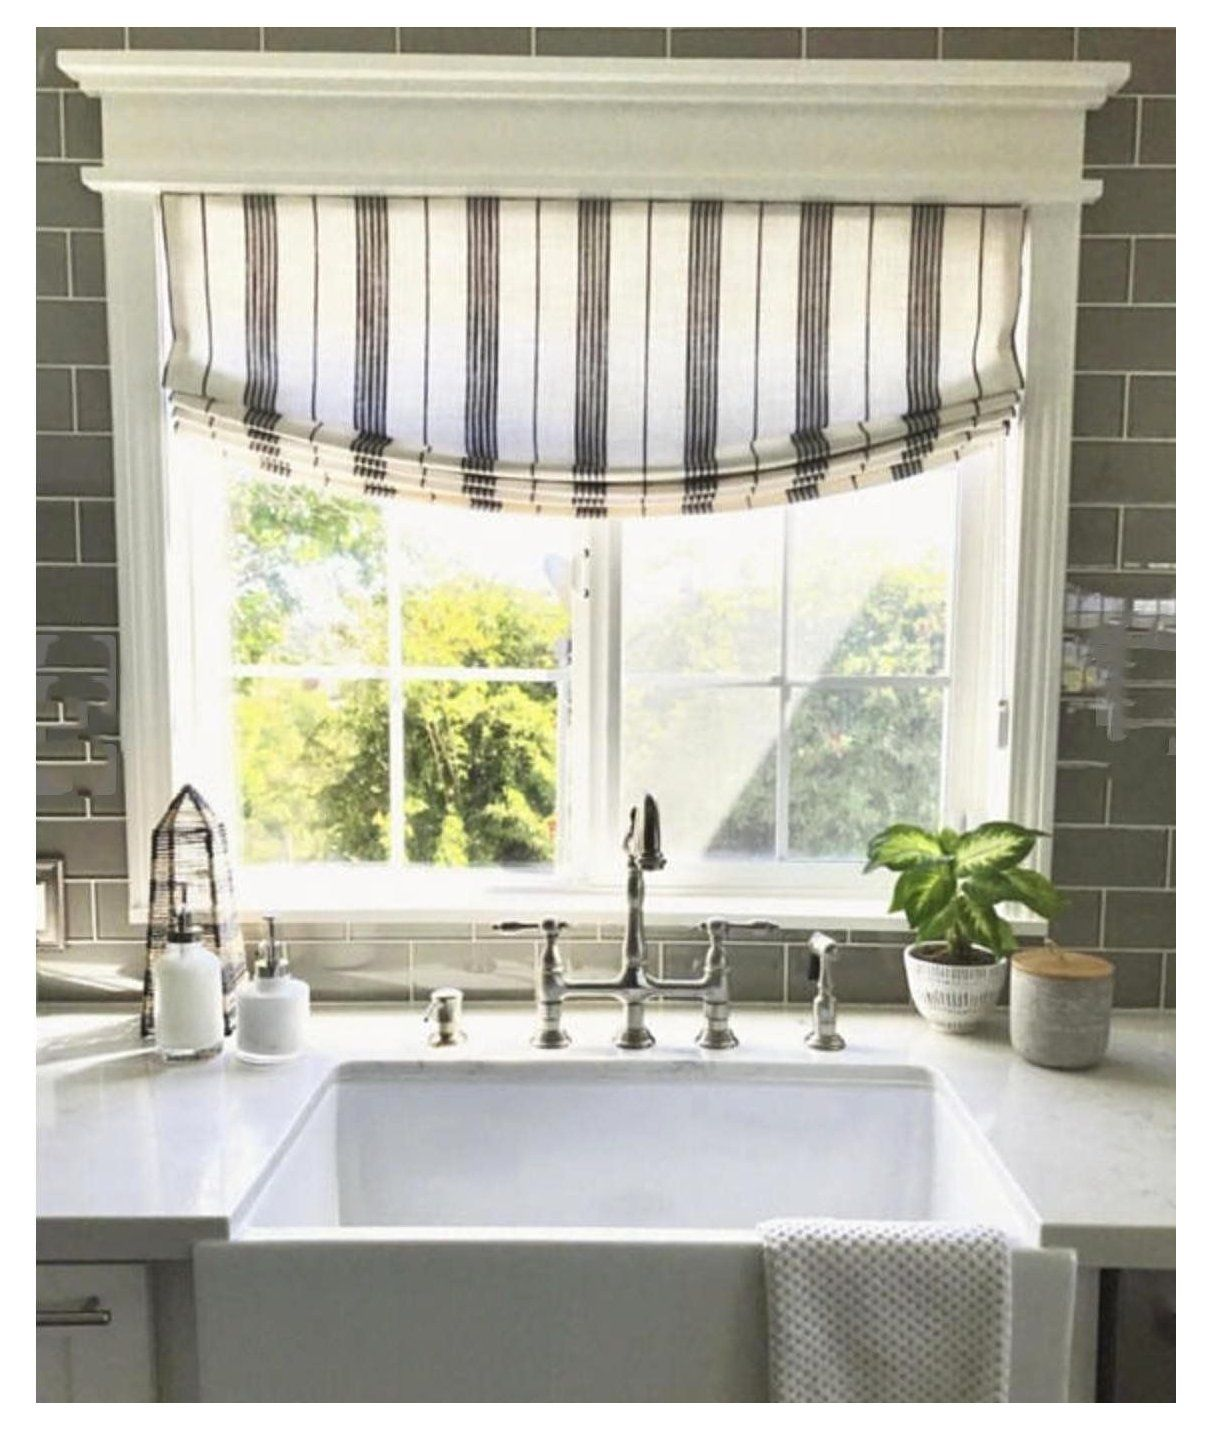 Pin By Sophie Pike On Future Home In 2020 Kitchen Window Coverings Roman Shades Kitchen Kitchen Window Treatments